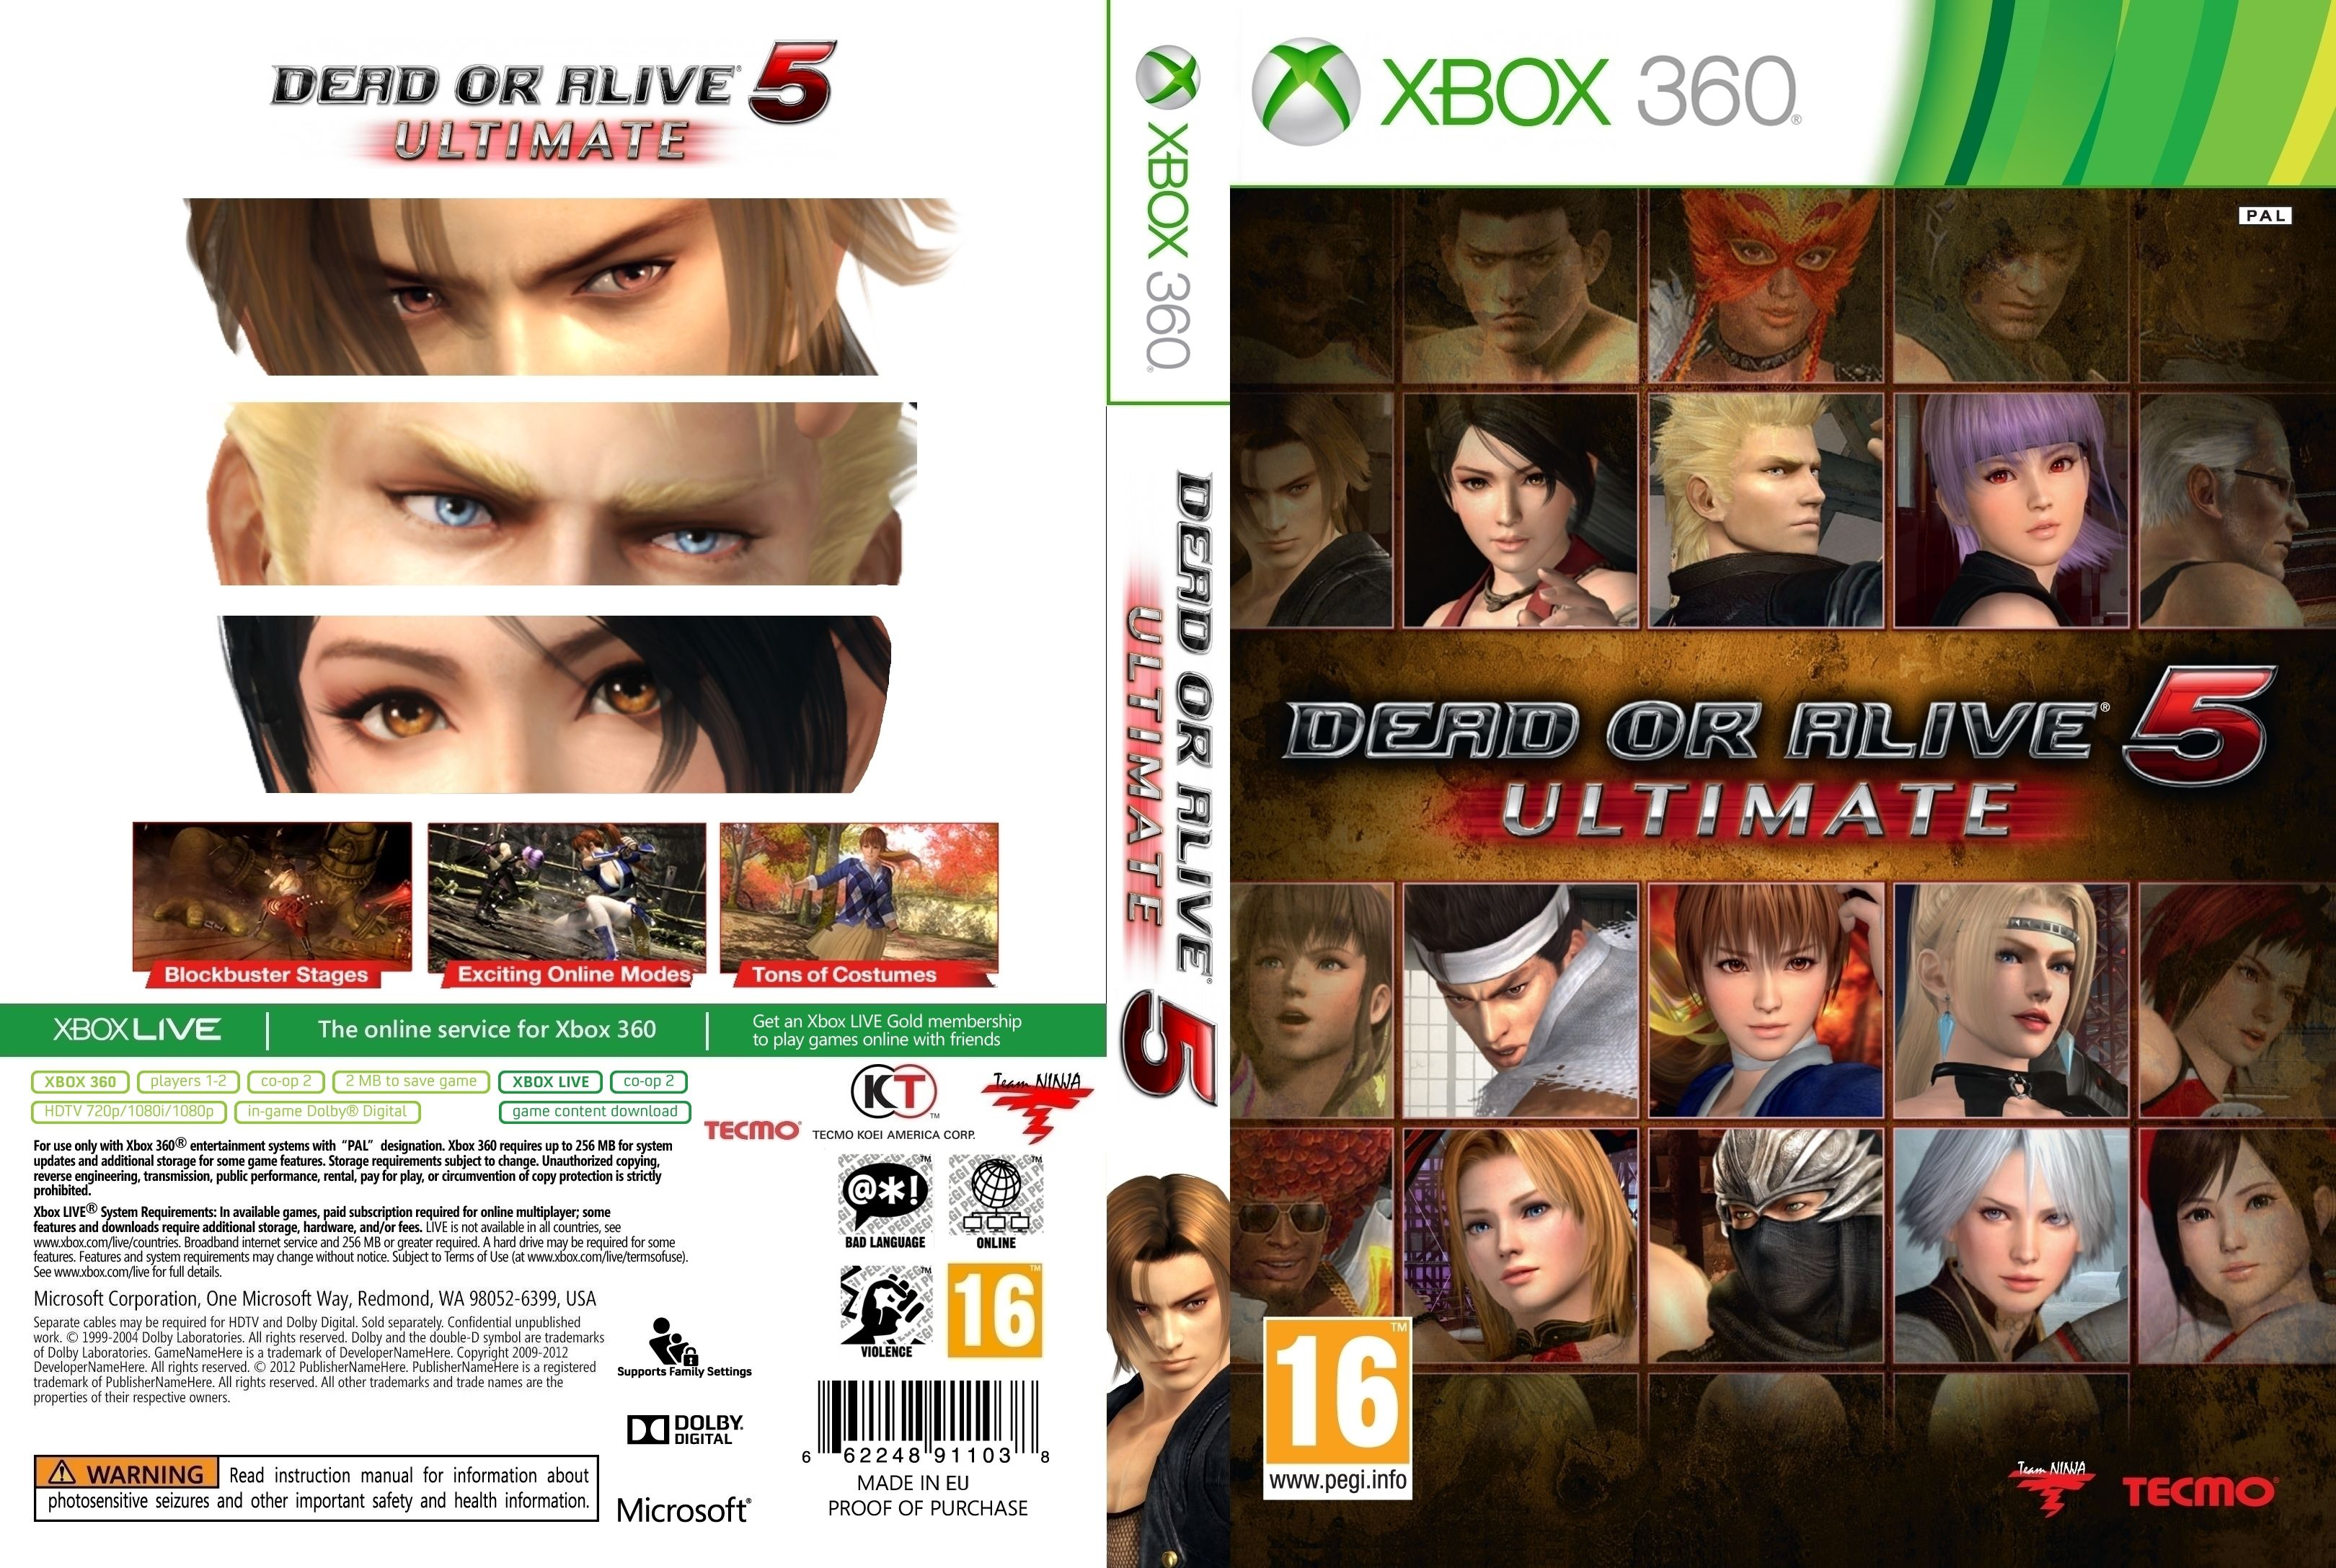 Dead or alive ultimate xbox iso download - www iionpgxwnshlp ga